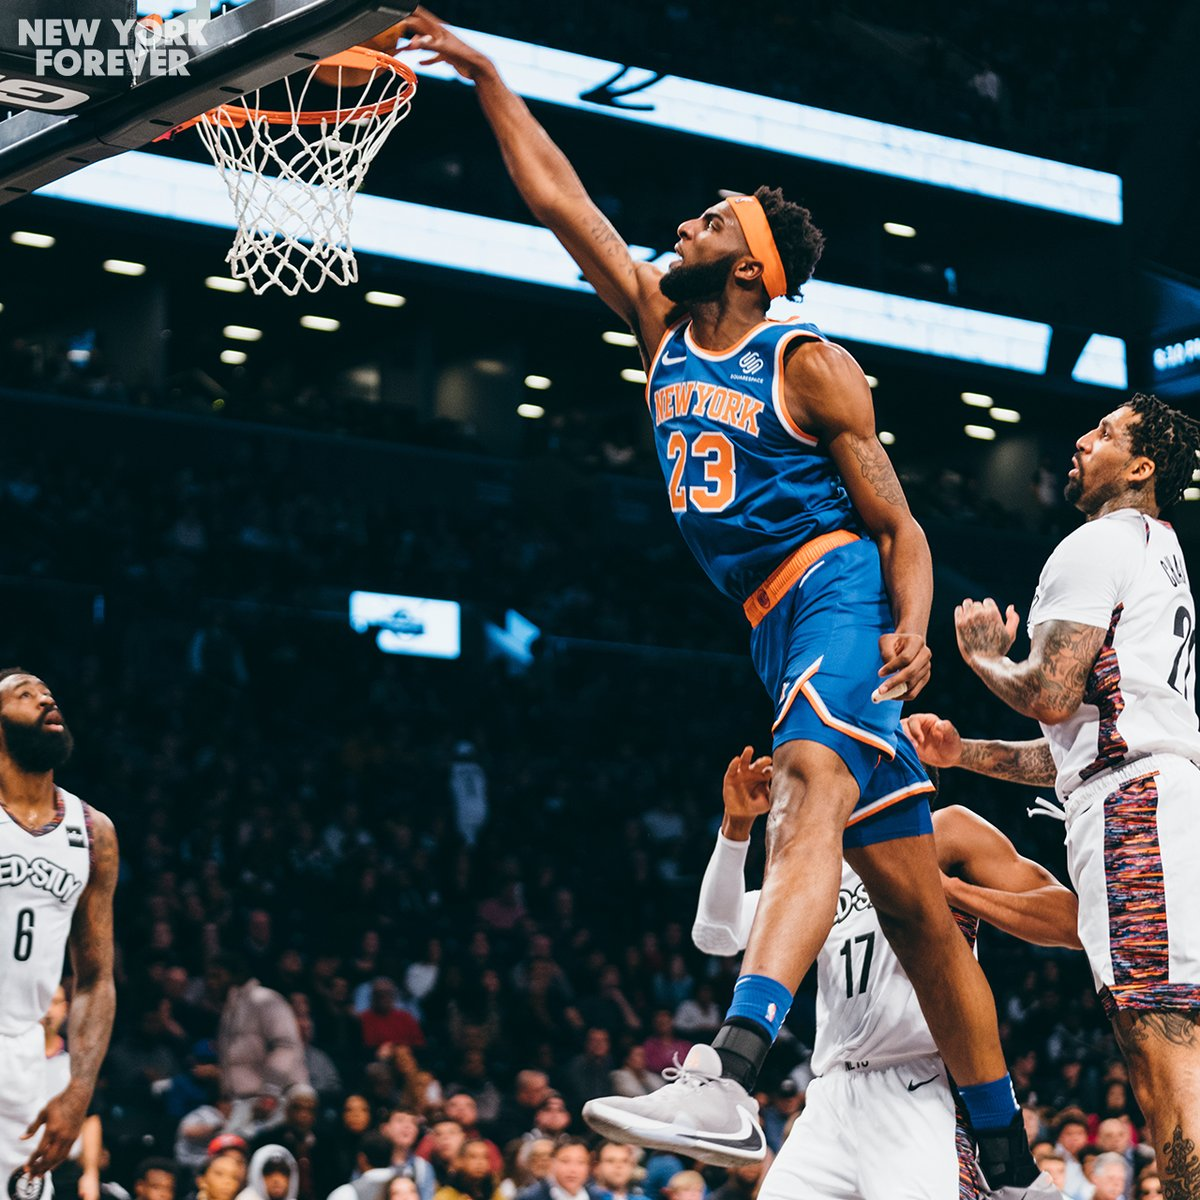 """""""I like slam dunks, take me to the hoop""""  Some of the best dunks from the 2019-20 season 🔨 https://t.co/3q2CKoNcb0"""